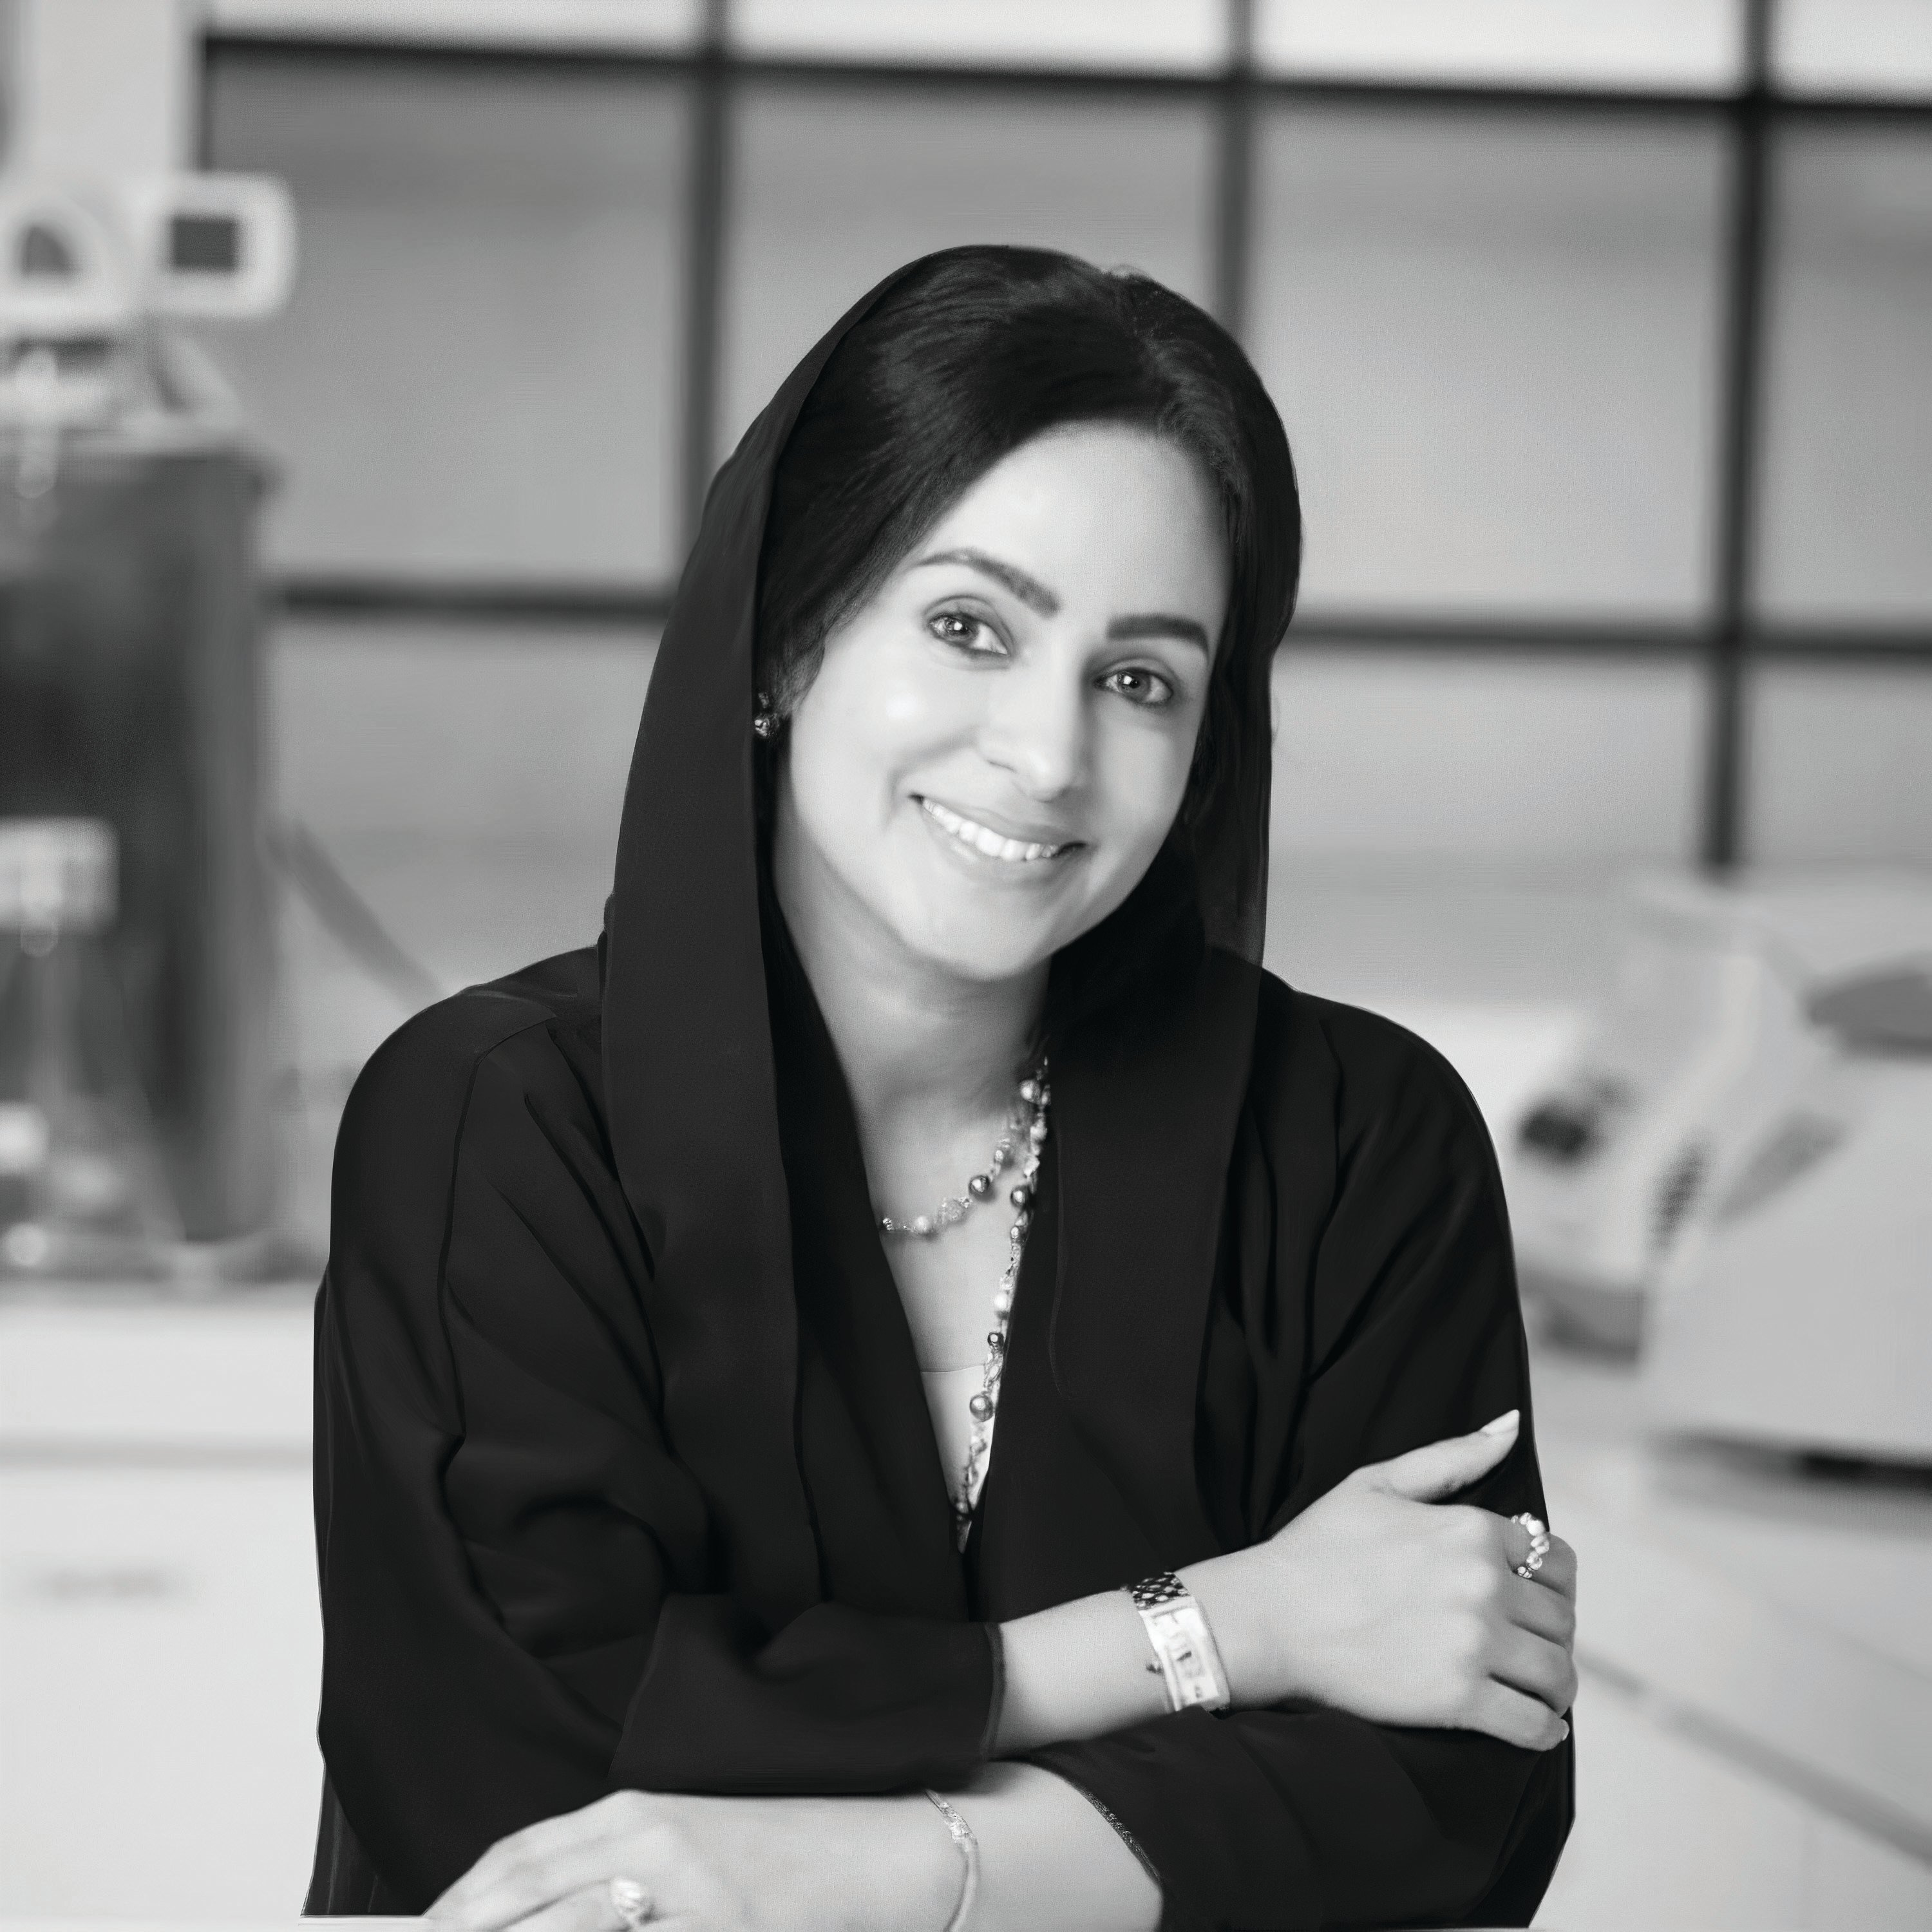 BW 2020 Official Photo of H E Dr Maryam-High resolution